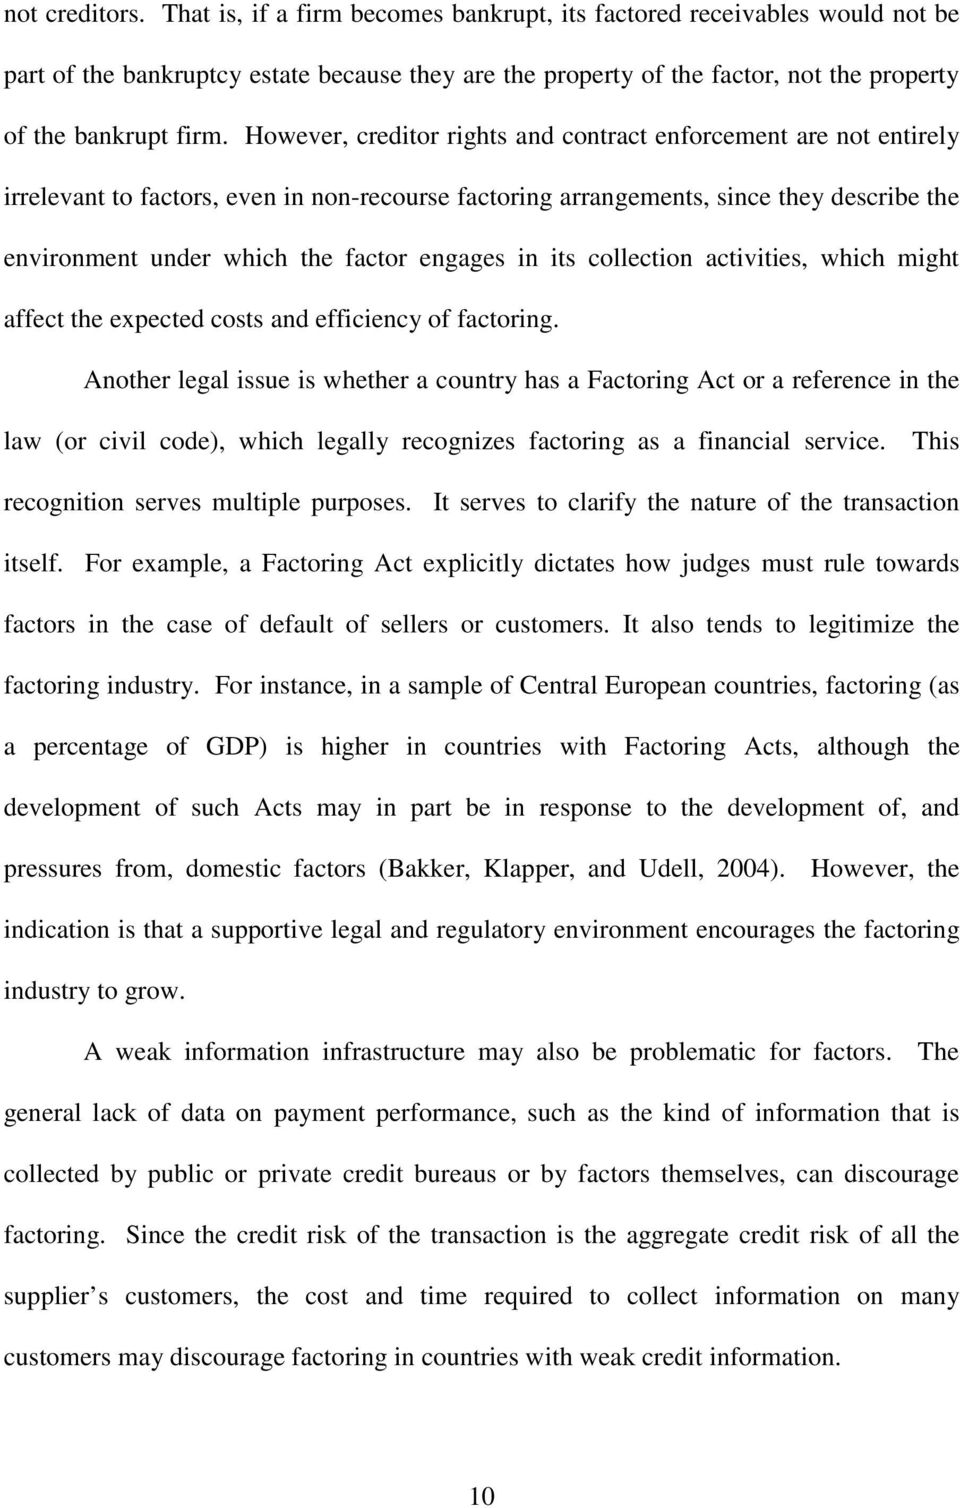 However, creditor rights and contract enforcement are not entirely irrelevant to factors, even in non-recourse factoring arrangements, since they describe the environment under which the factor